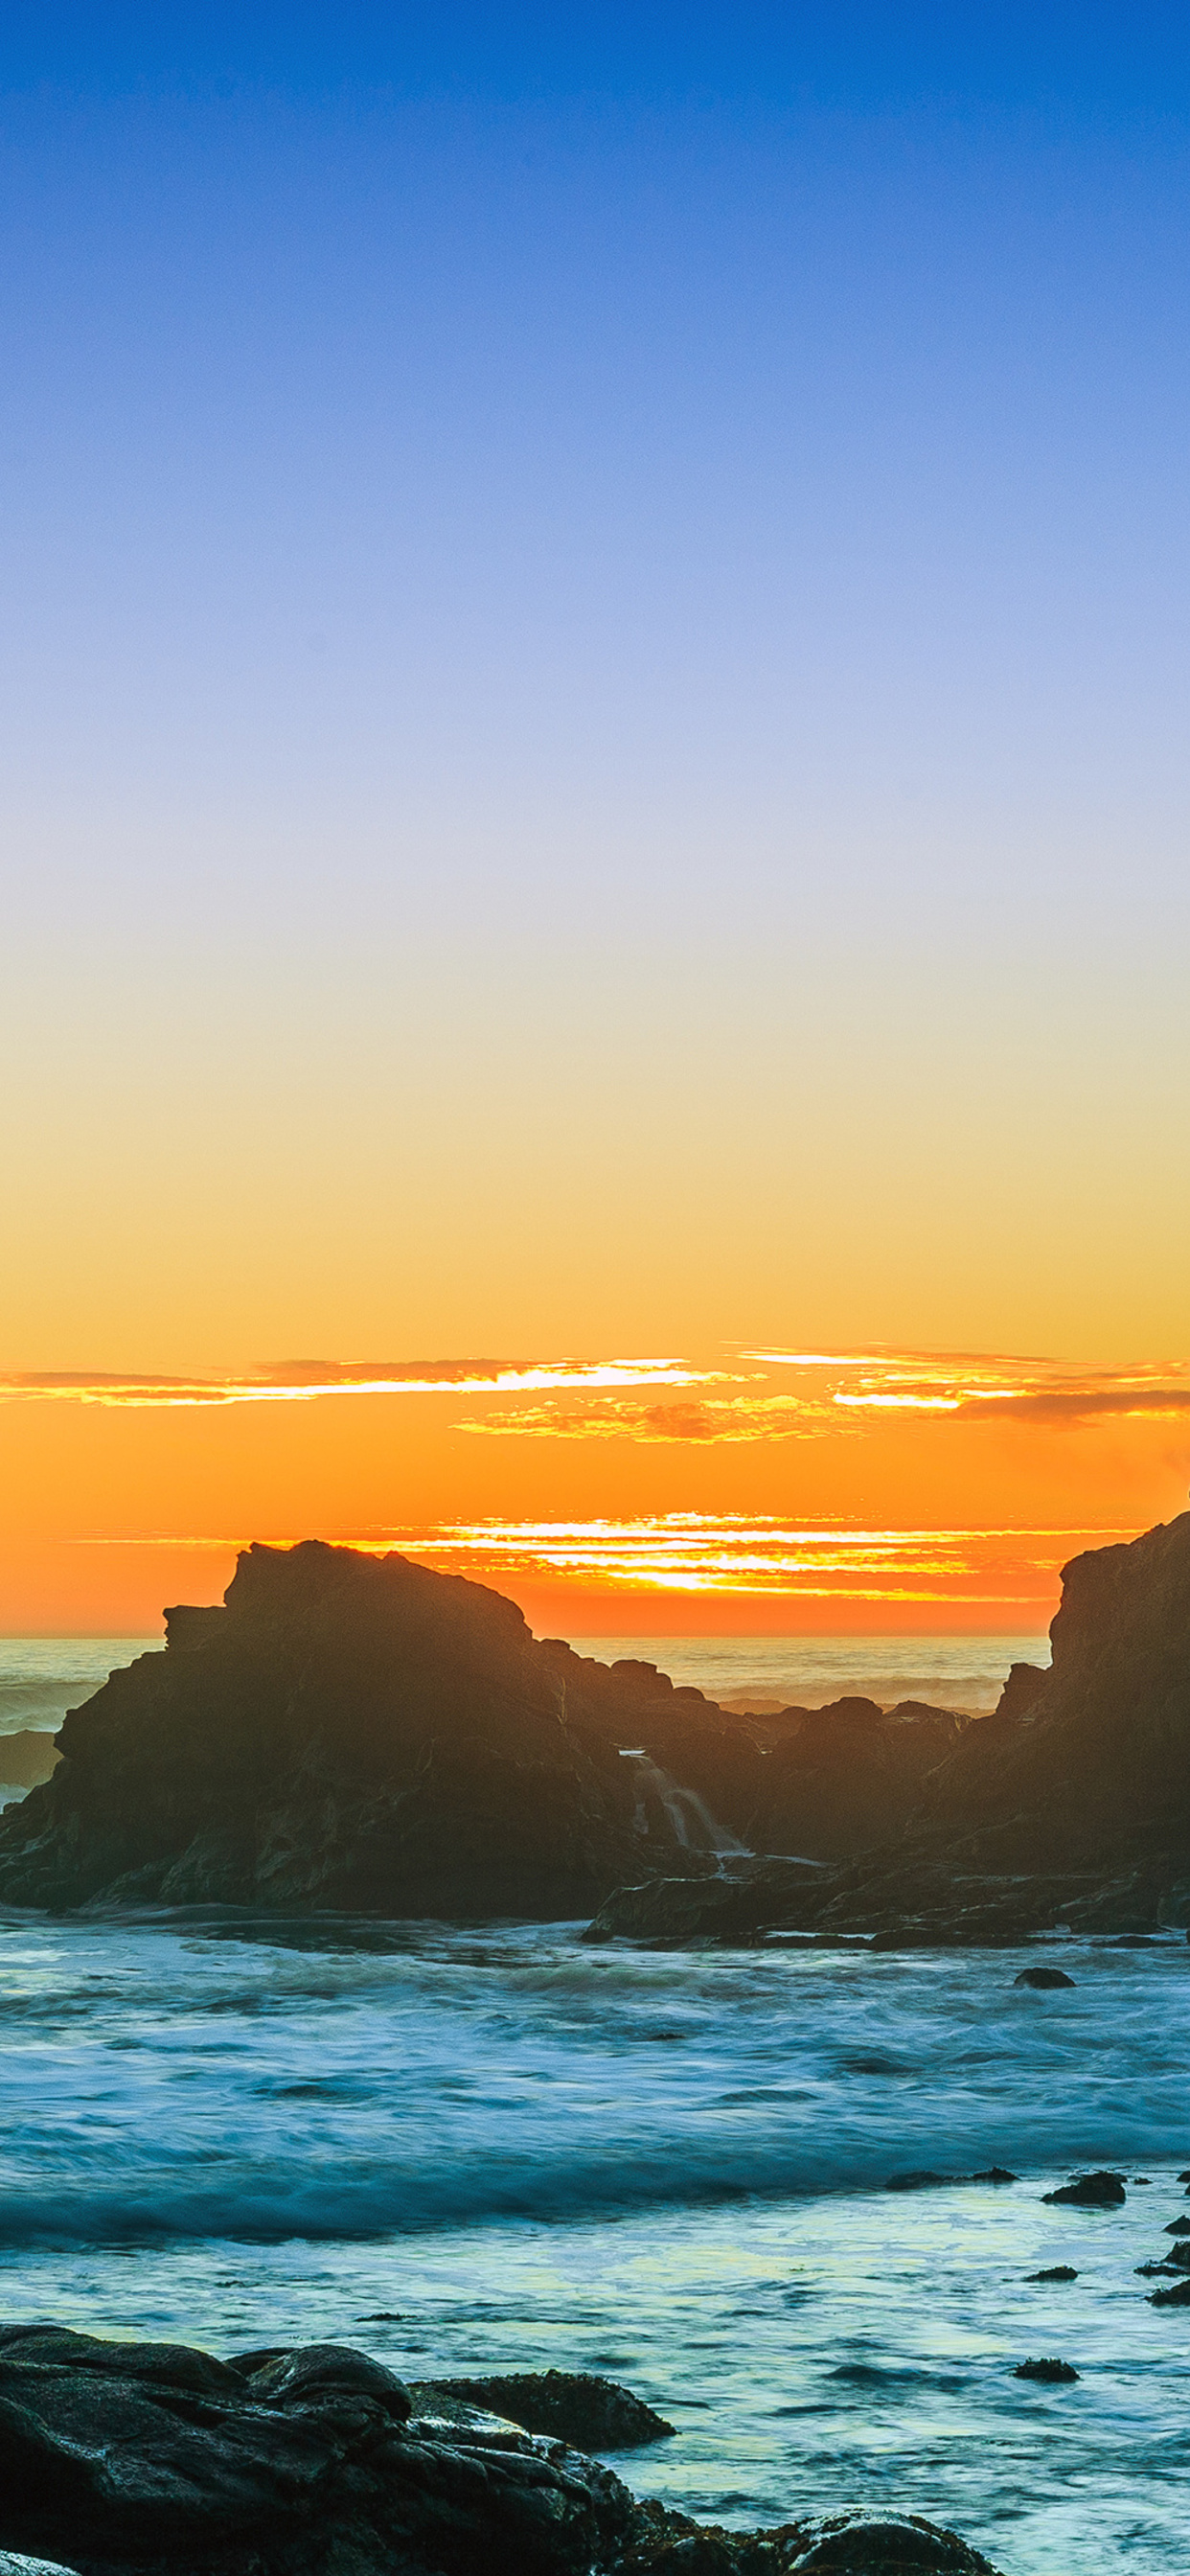 sunsets-at-cape-arago-4k-f2.jpg